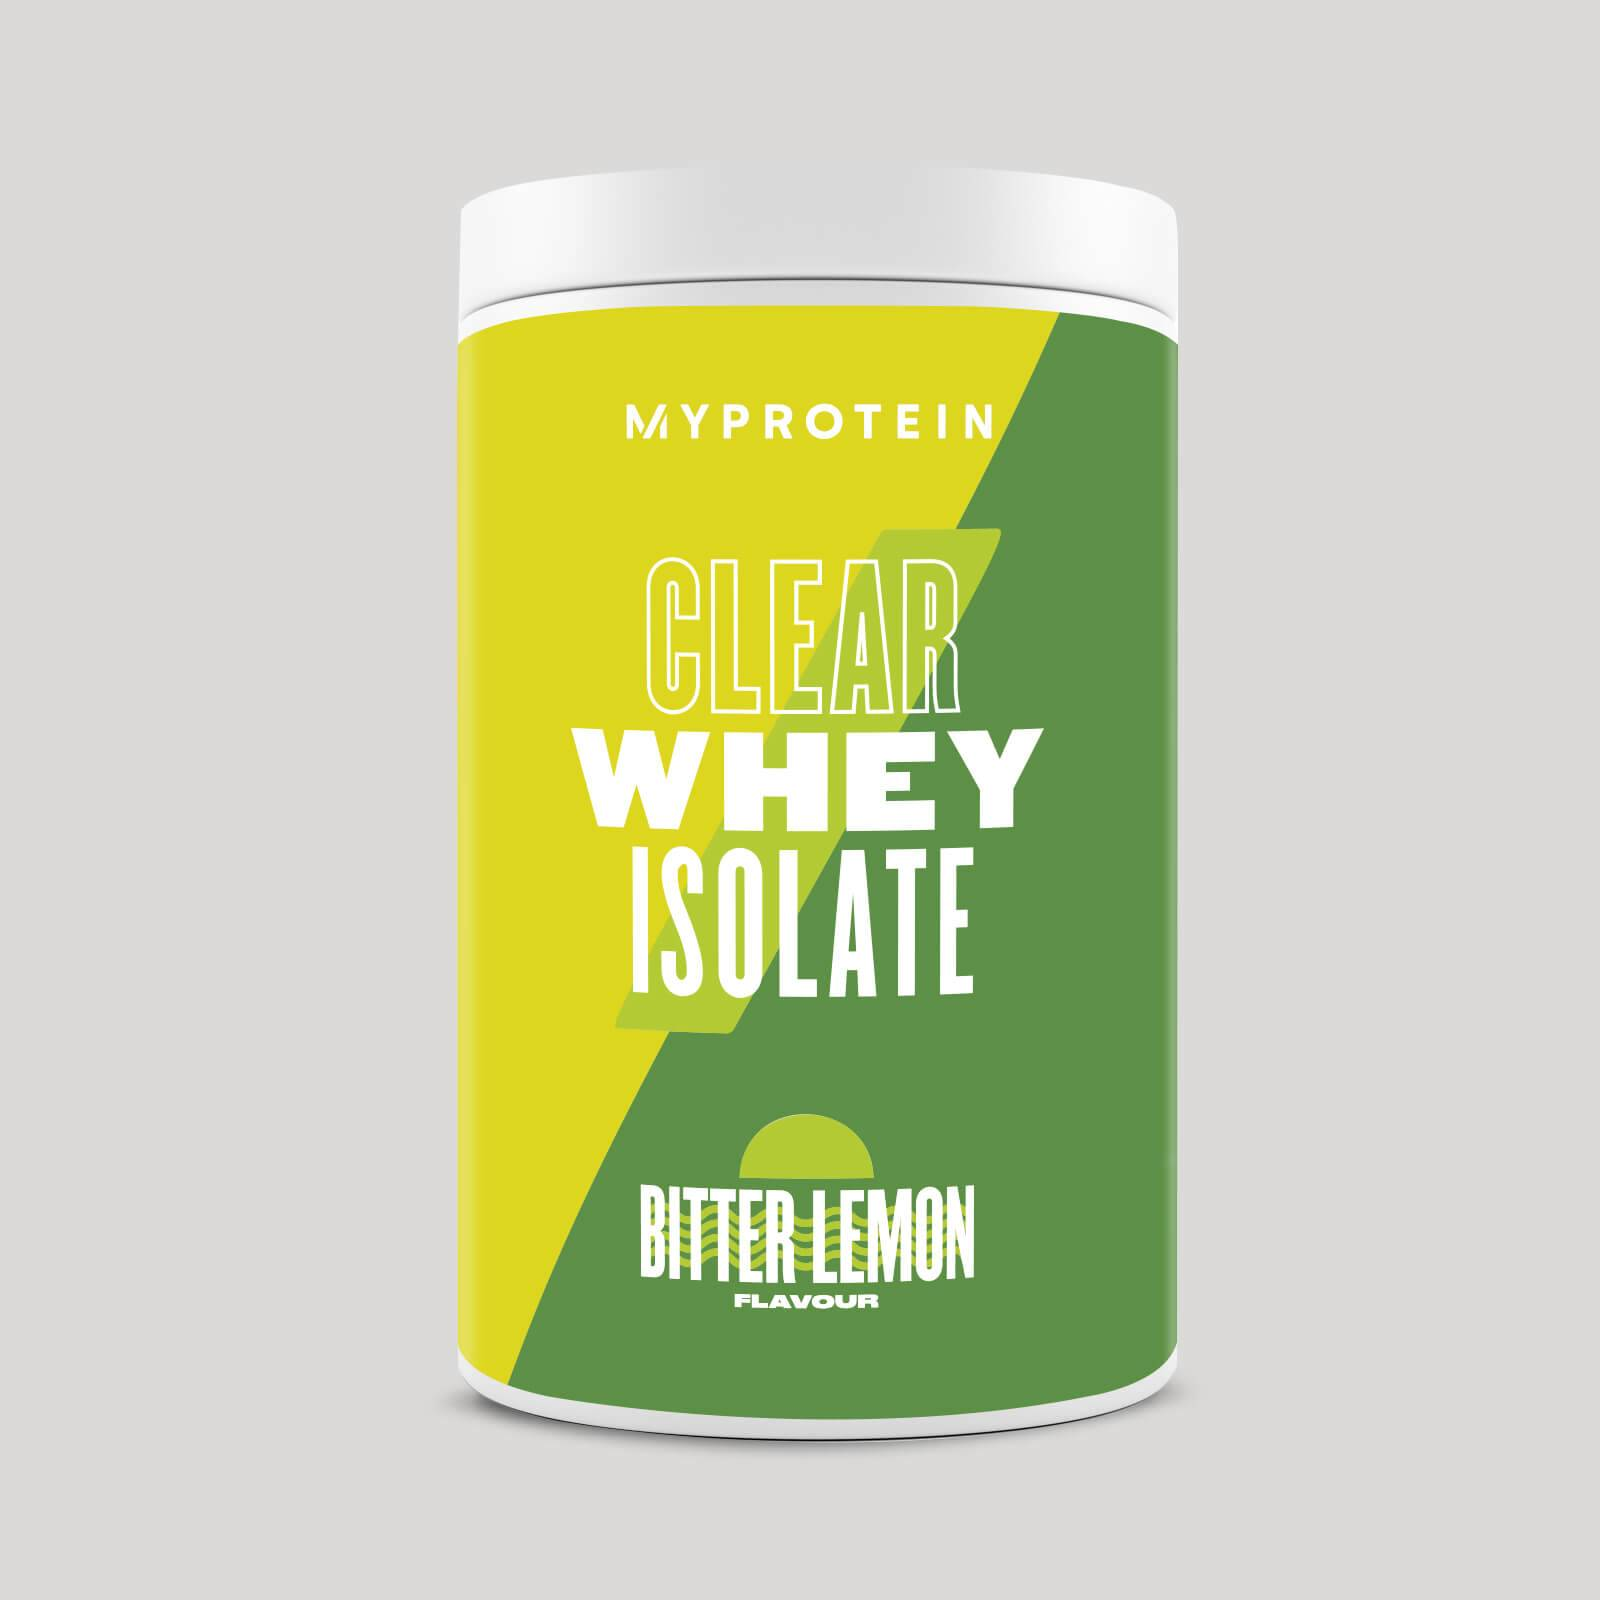 Myprotein Clear Whey Isolate - 20servings - Bitter Lemon